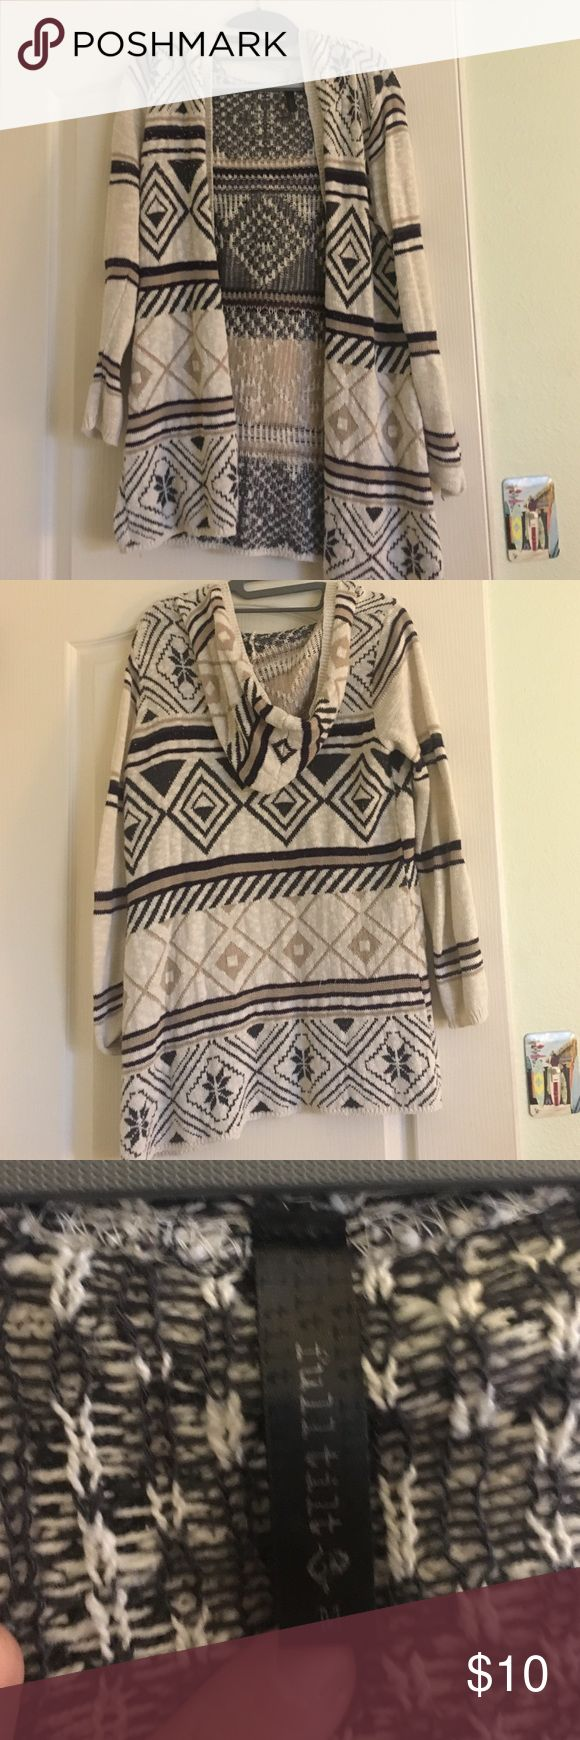 Tribal, warm cardigan! Warm tribal cardigan with a good in the back. Very cute, not too heavy or bulky at all. Made of 60% cotton and 40% acrylic. Full Tilt Sweaters Cardigans